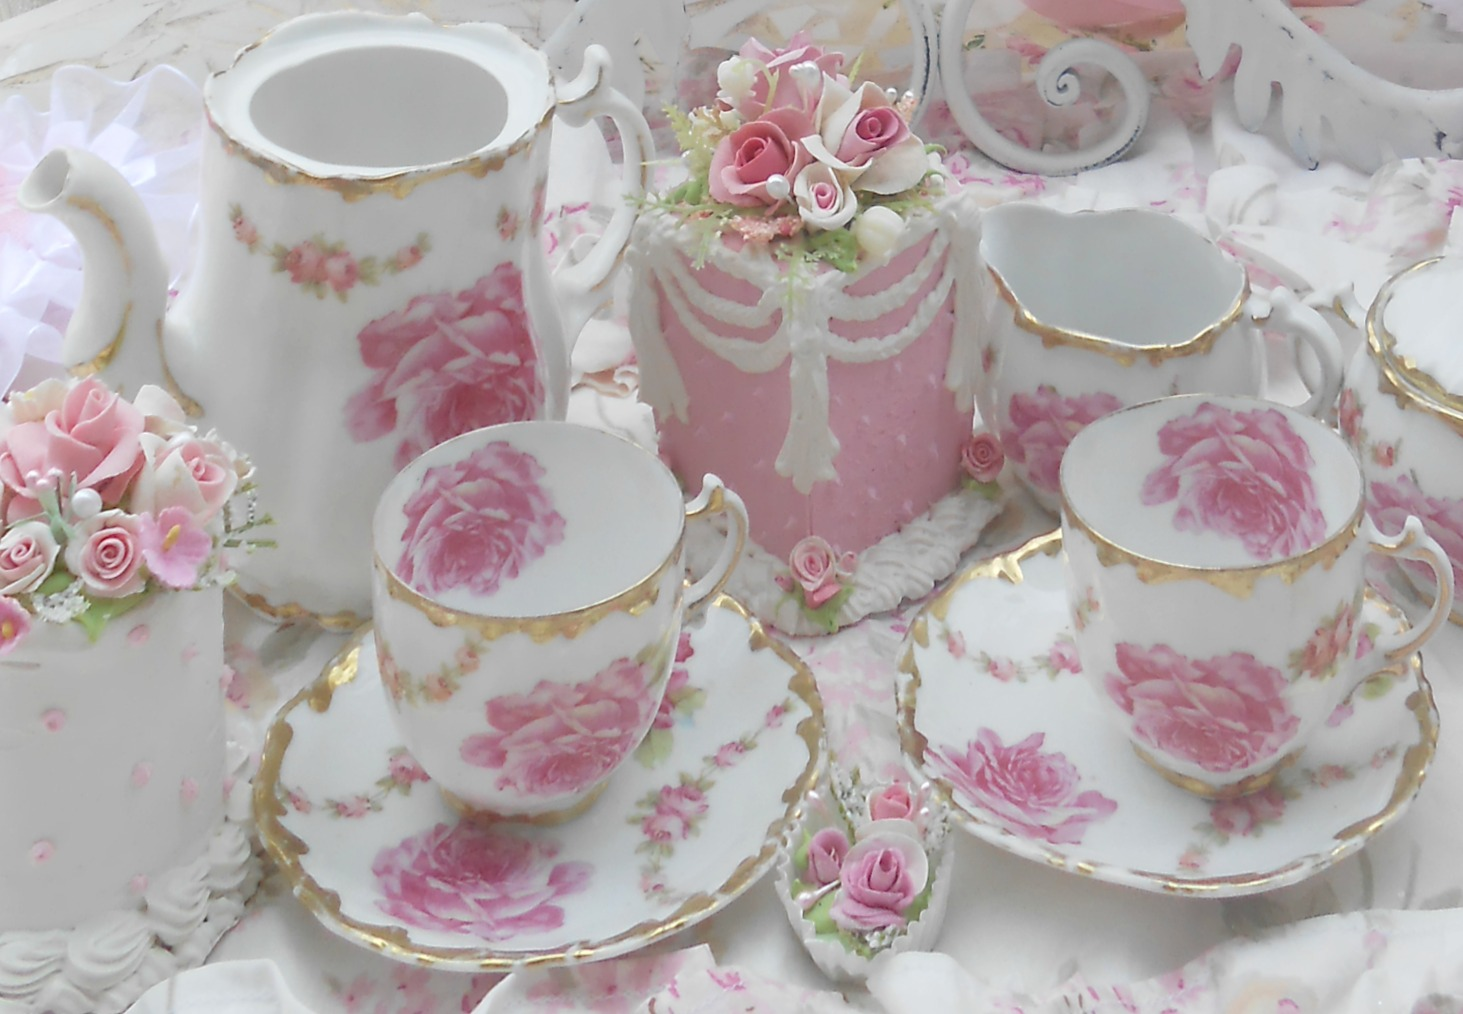 Olivia S Romantic Home Rose Garden Tea Party